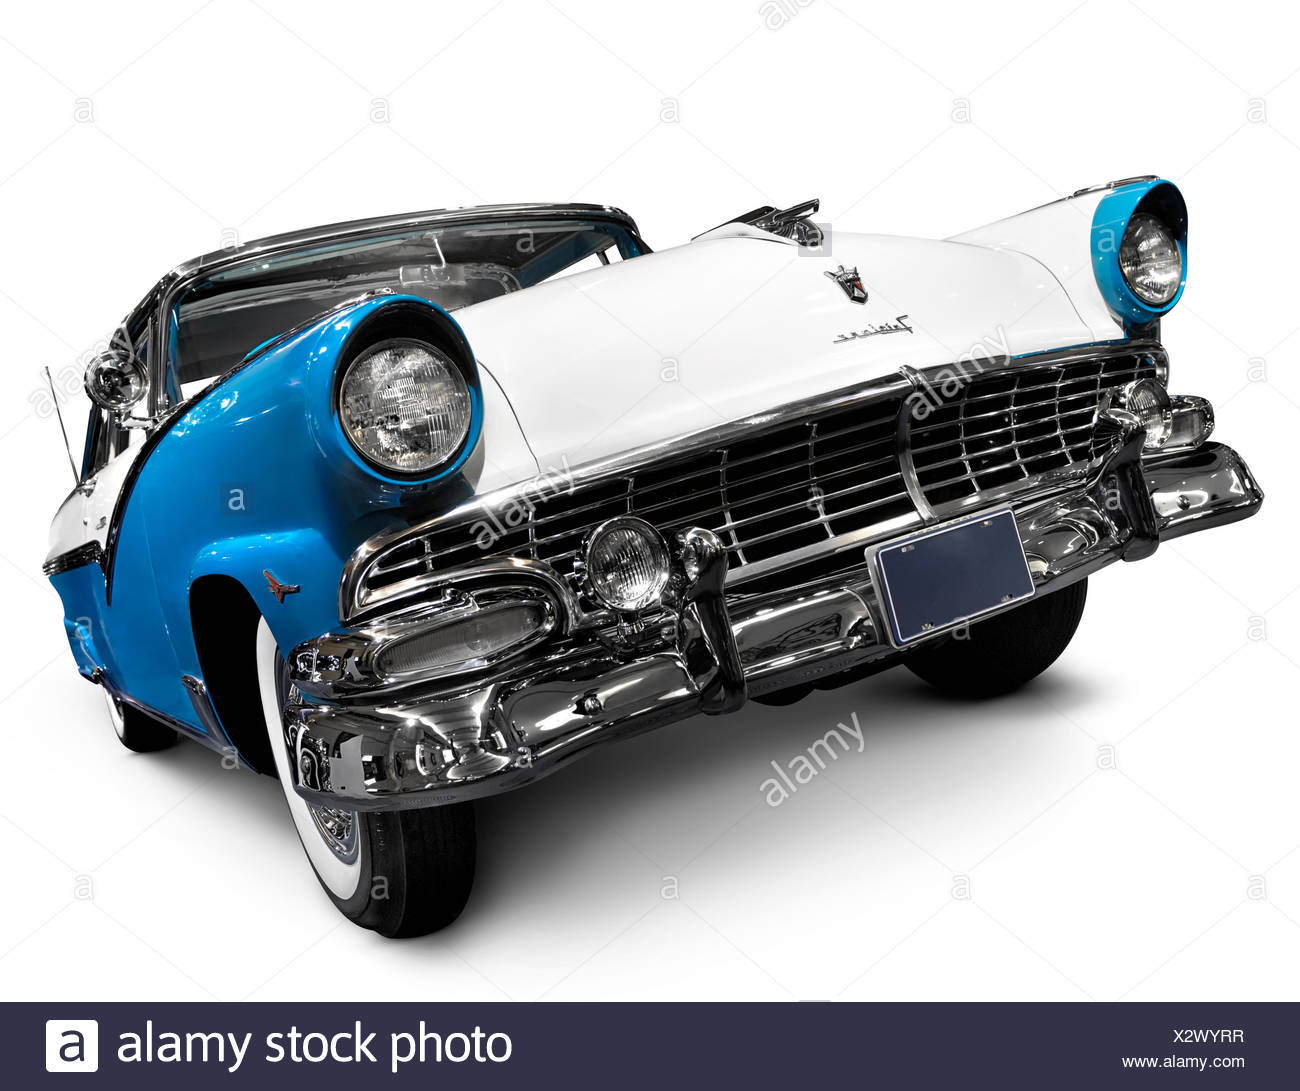 Turquoise blue Crown Victoria Skyliner 1956 Glasstop Vicky classic retro car by Ford Motor Company, also called Mercury - Stock Image